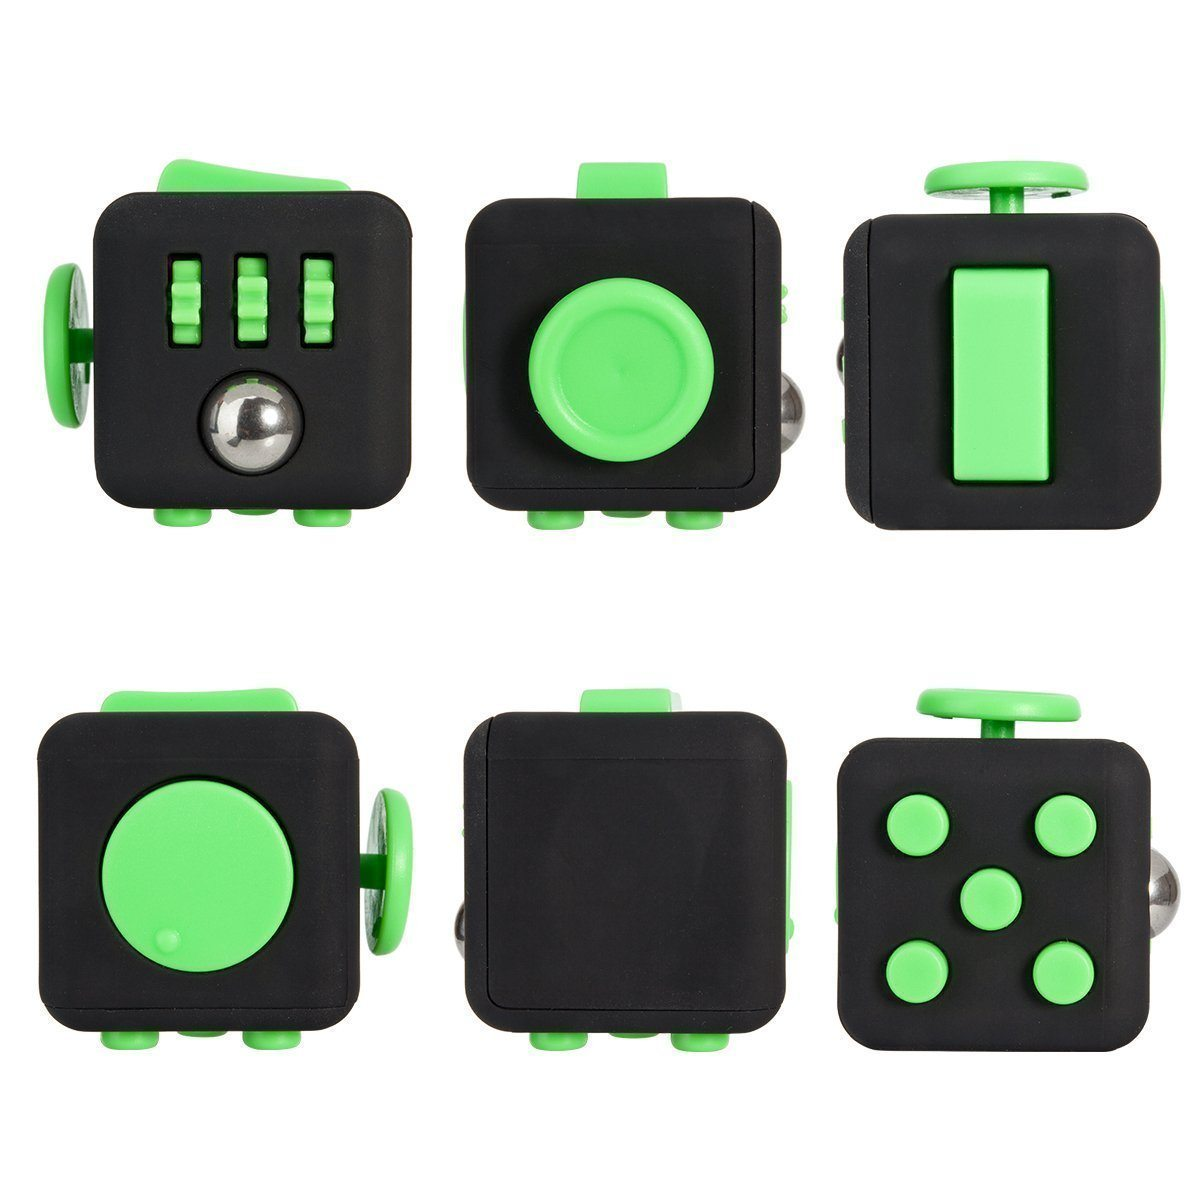 61rwgeW8ZqL. SL1200  1 - VHEM Fidget Cube Relieves Stress And Anxiety for Children and Adults Anxiety Attention Toy